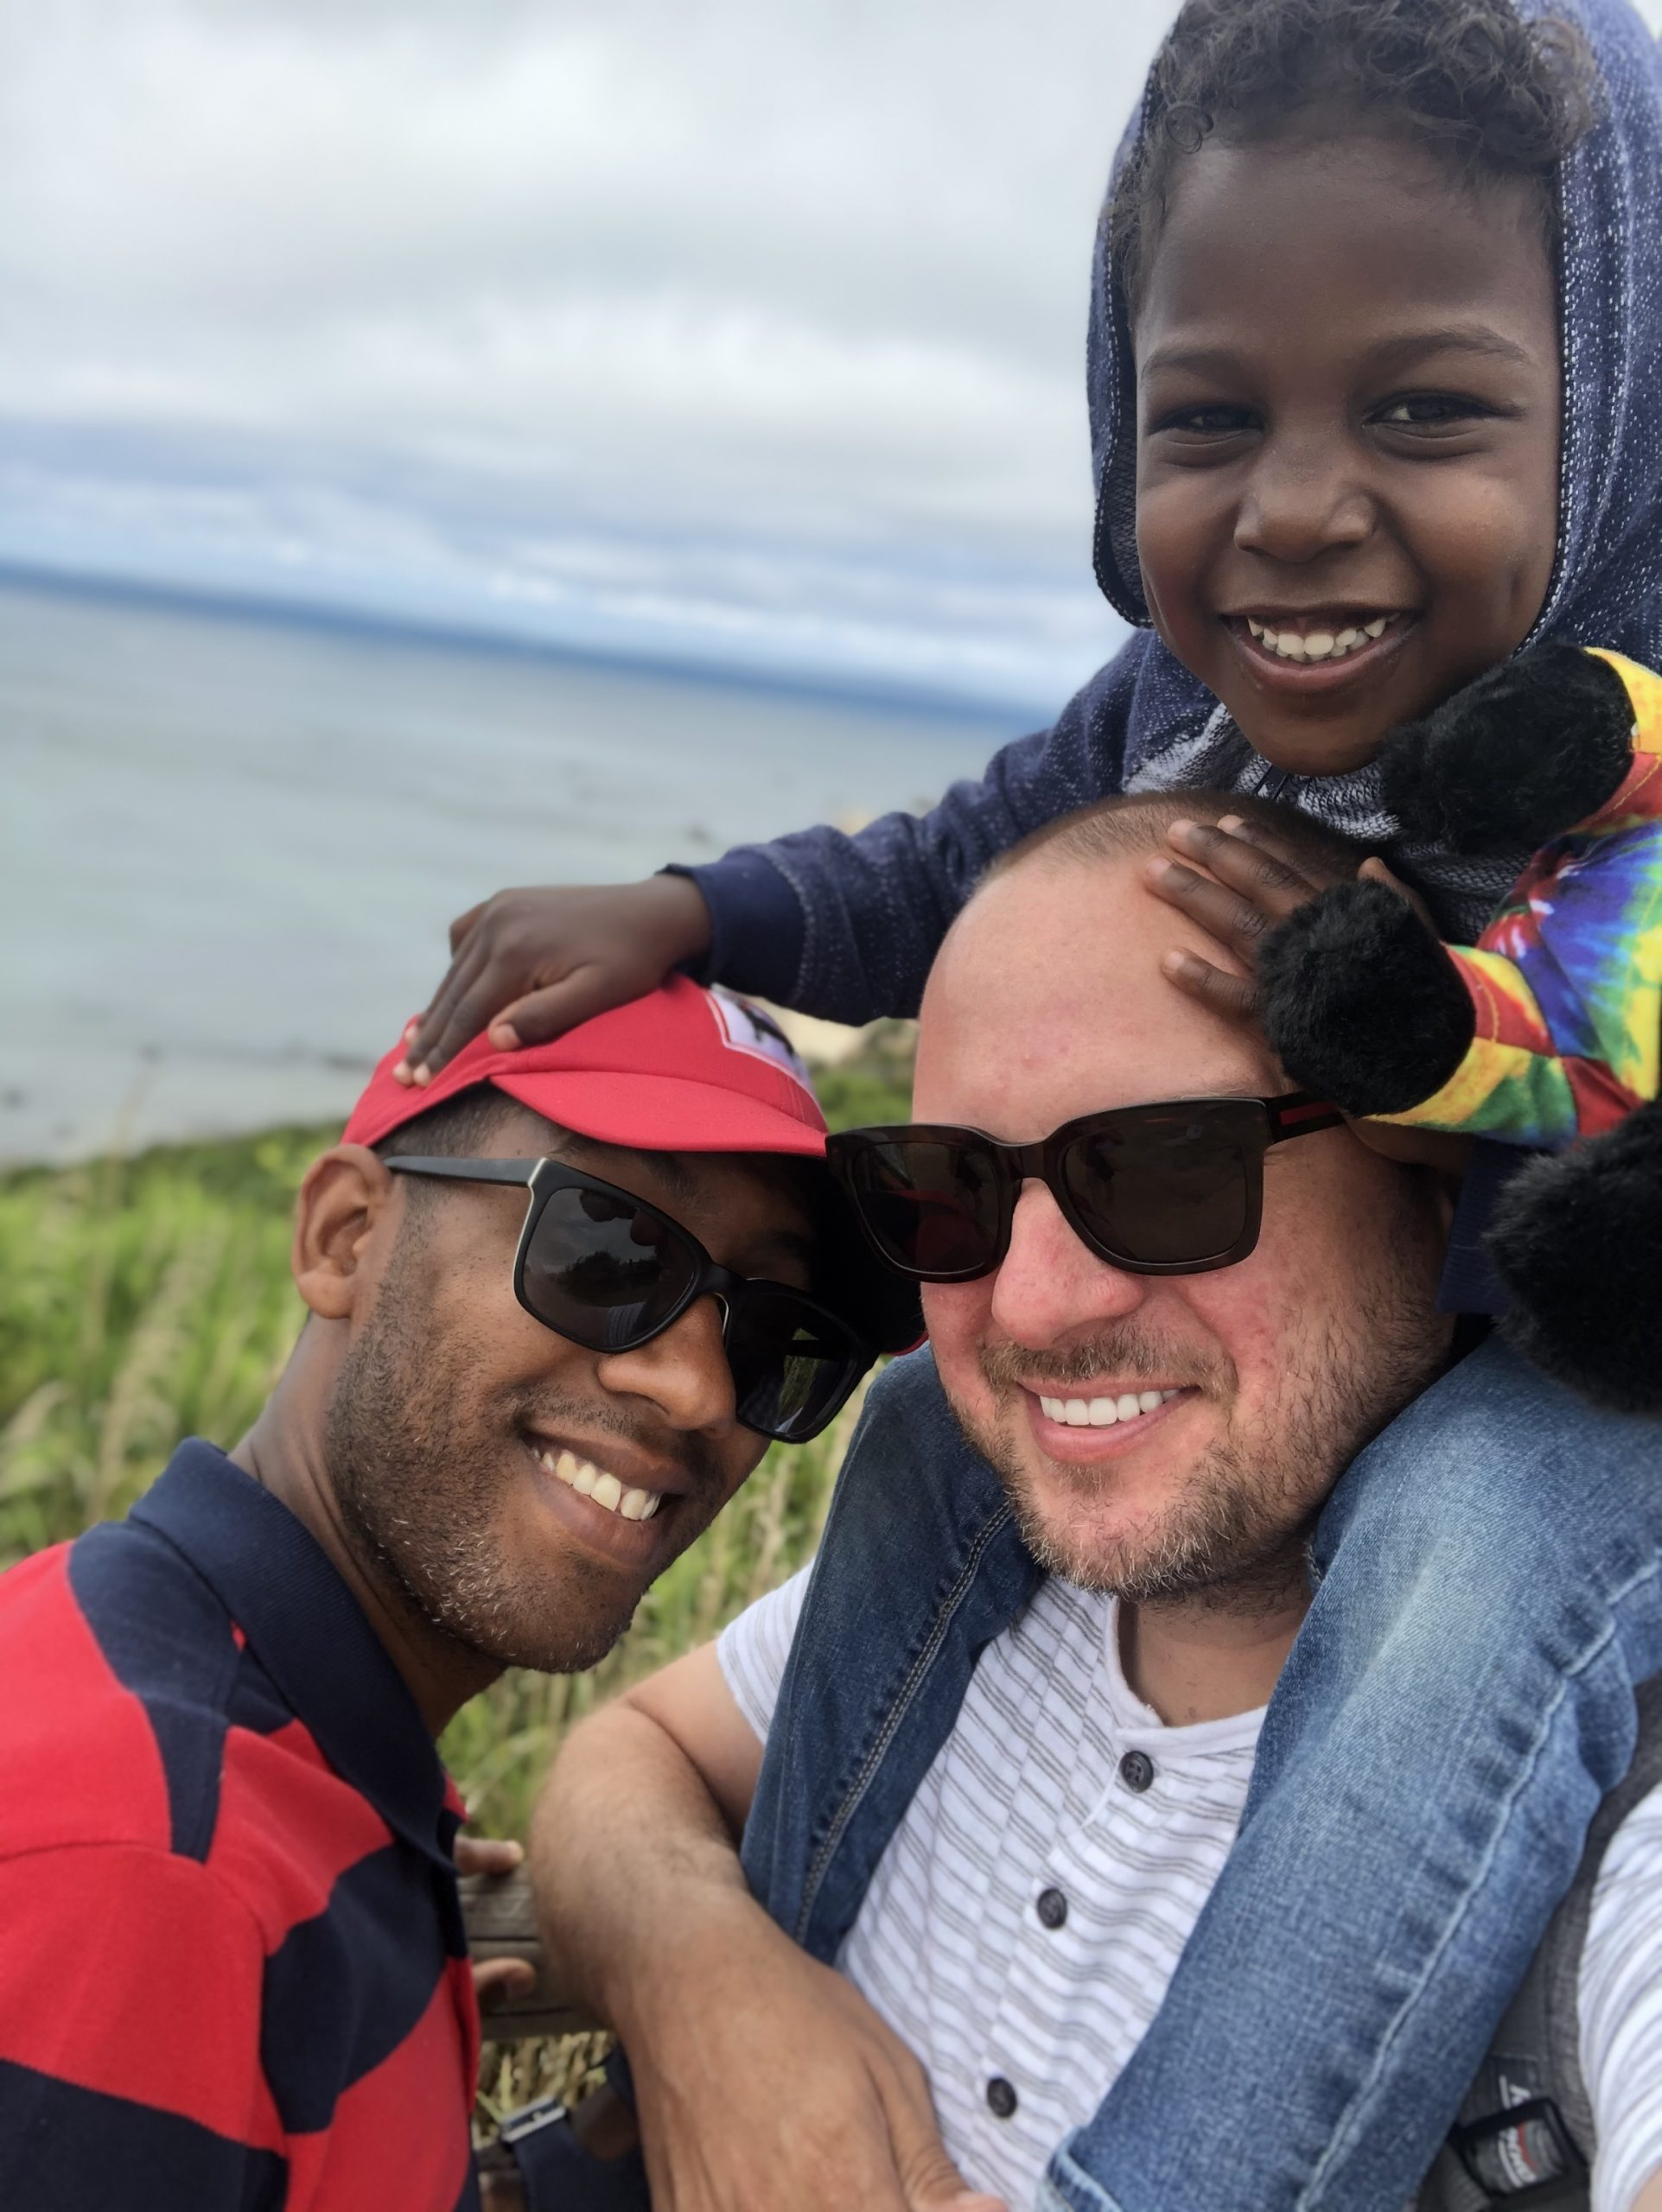 Outdoor photo of Trey with his son on his husband's shoulders